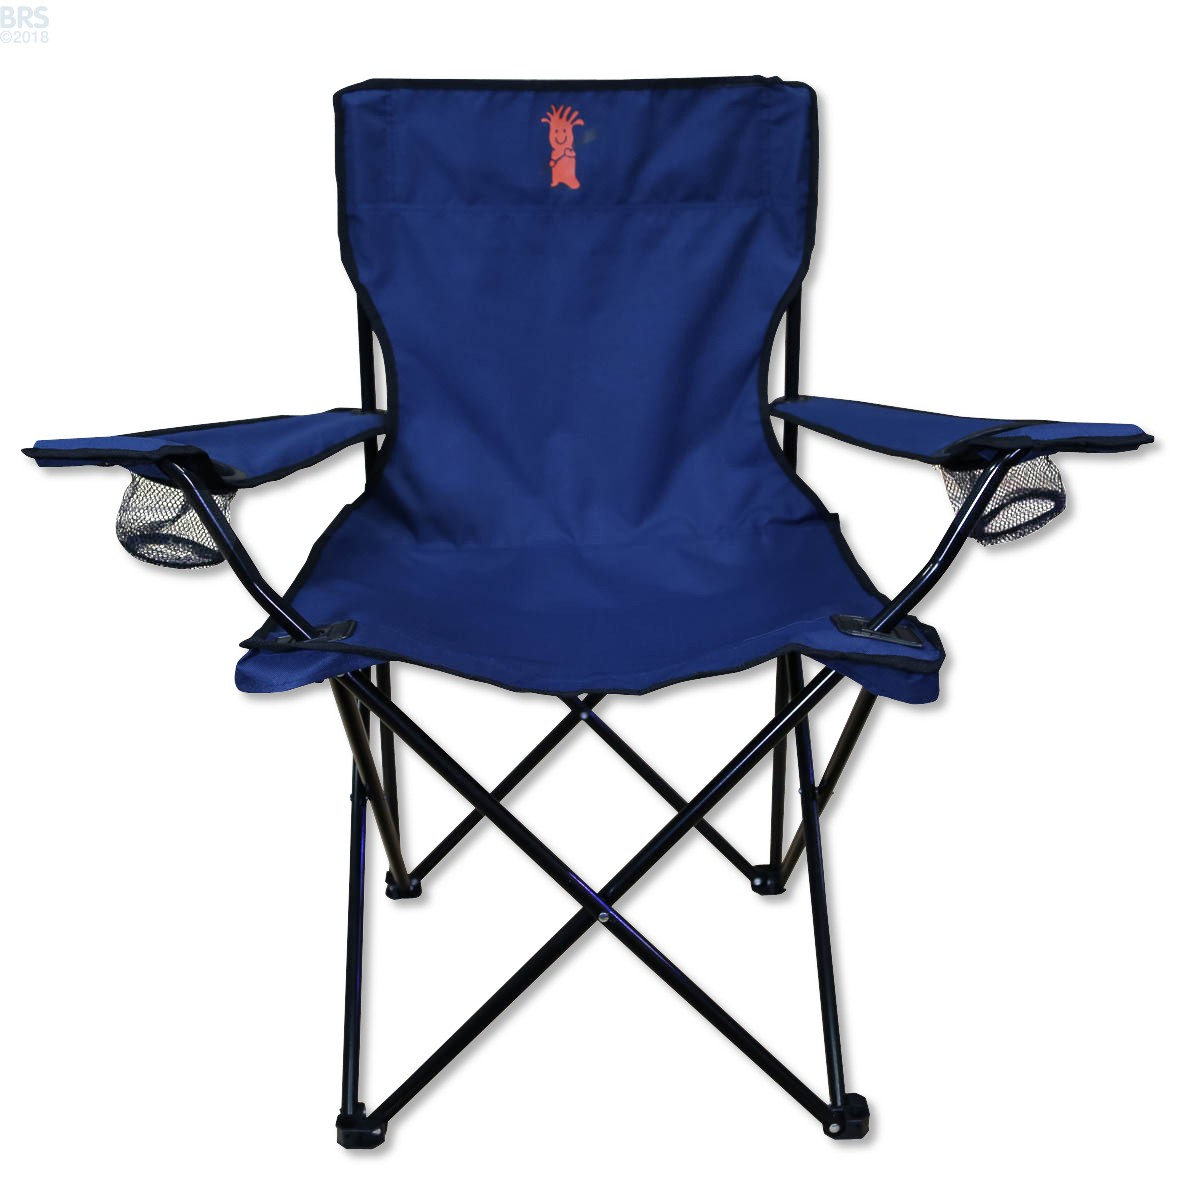 Folding Chairs In Bulk Folding Chair With Carry Bag Brs Bulk Reef Supply